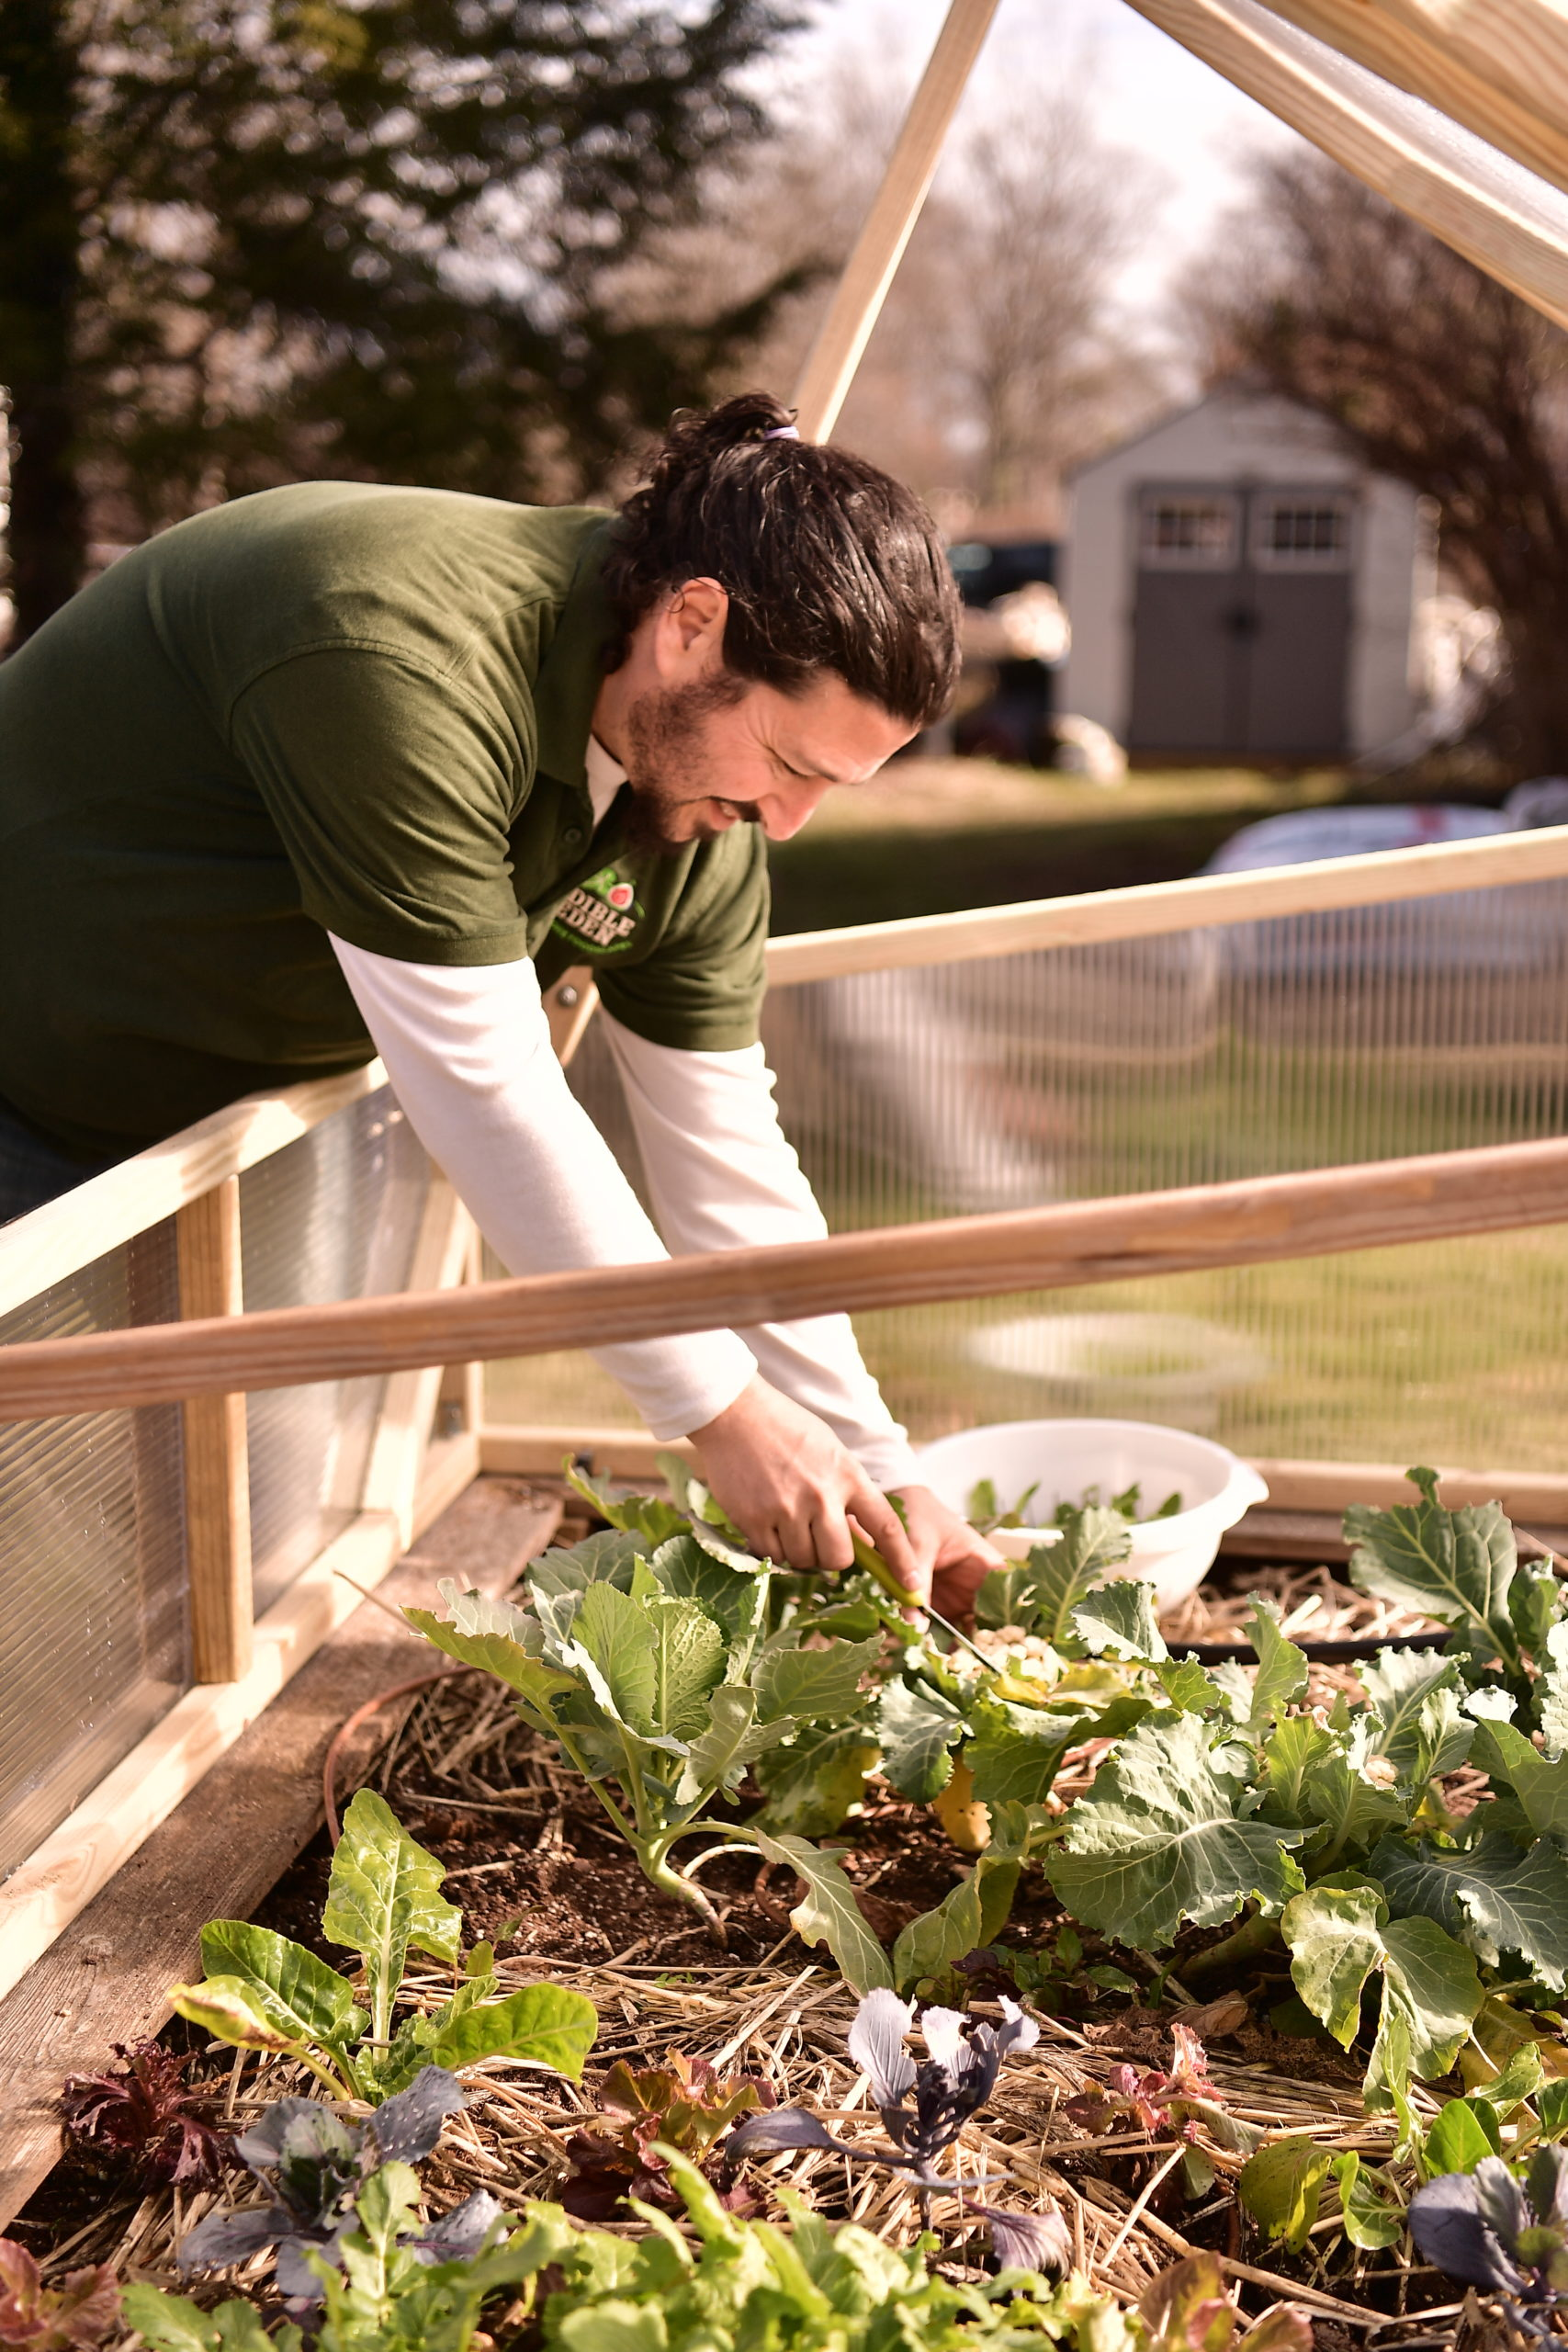 Rosenstein harvests greens from his cold frame.